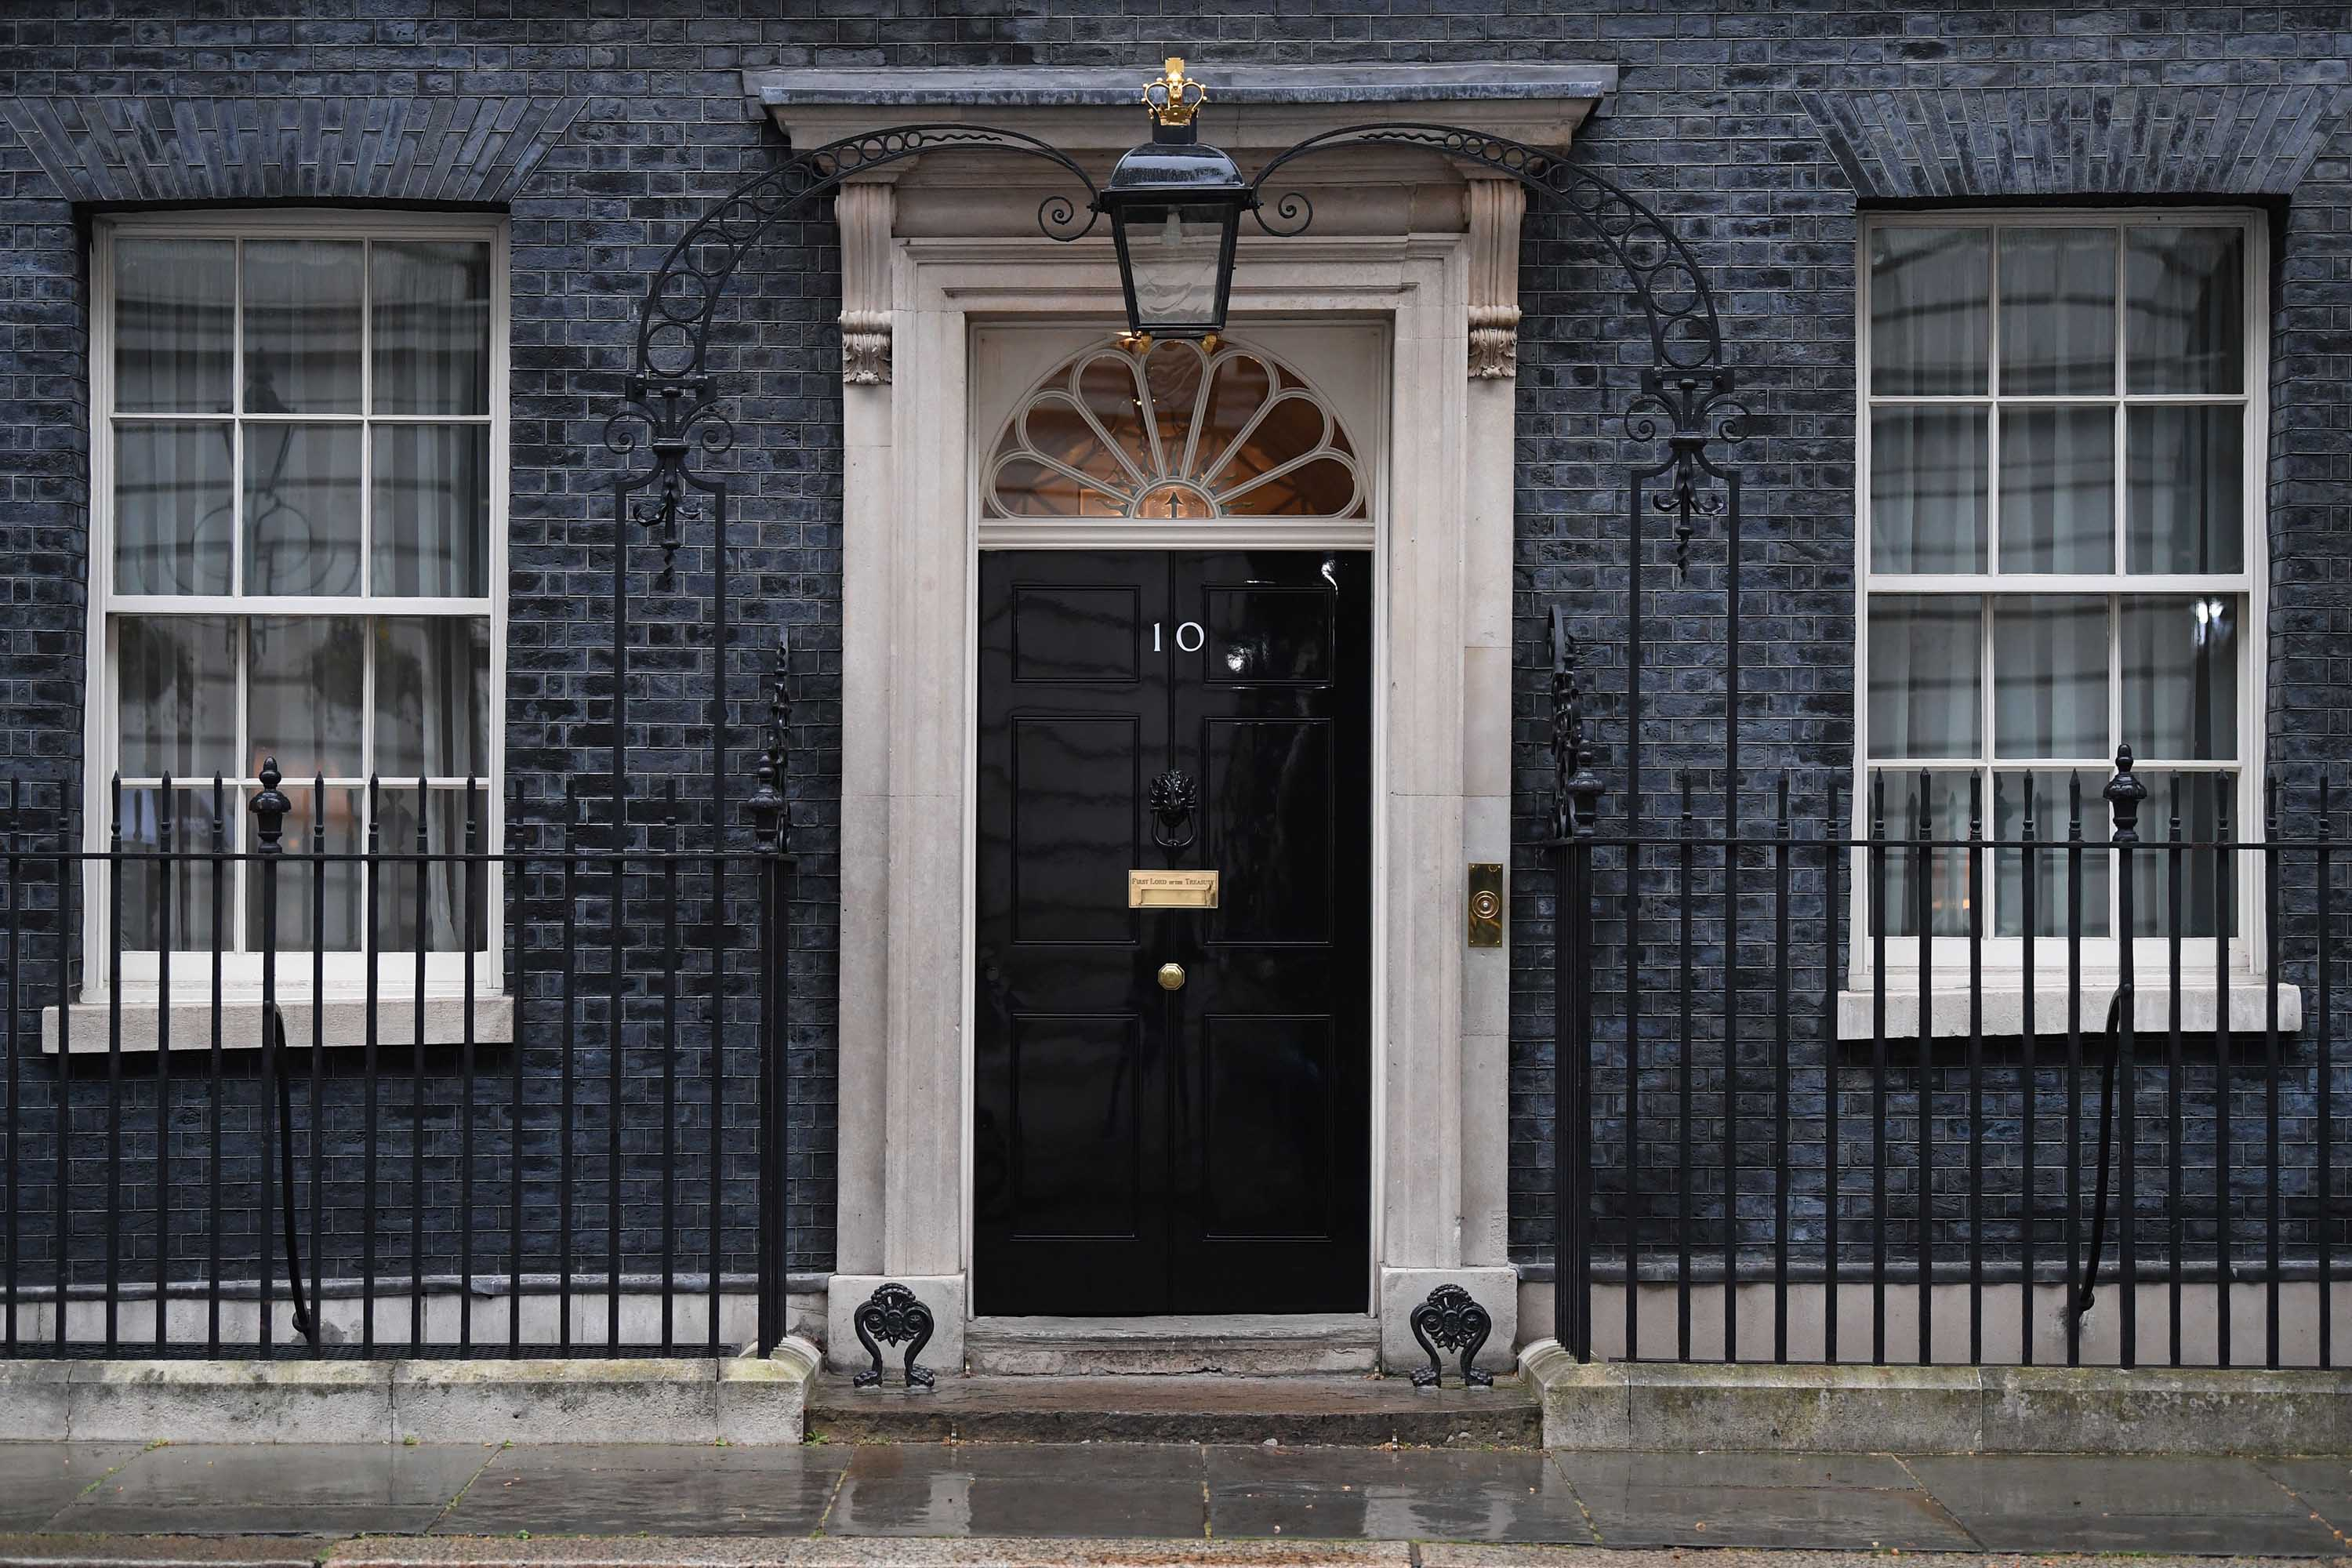 The front door of 10 Downing Street is pictured in London on April 6, after British Prime Minister Boris Johnson spent the night in hospital.